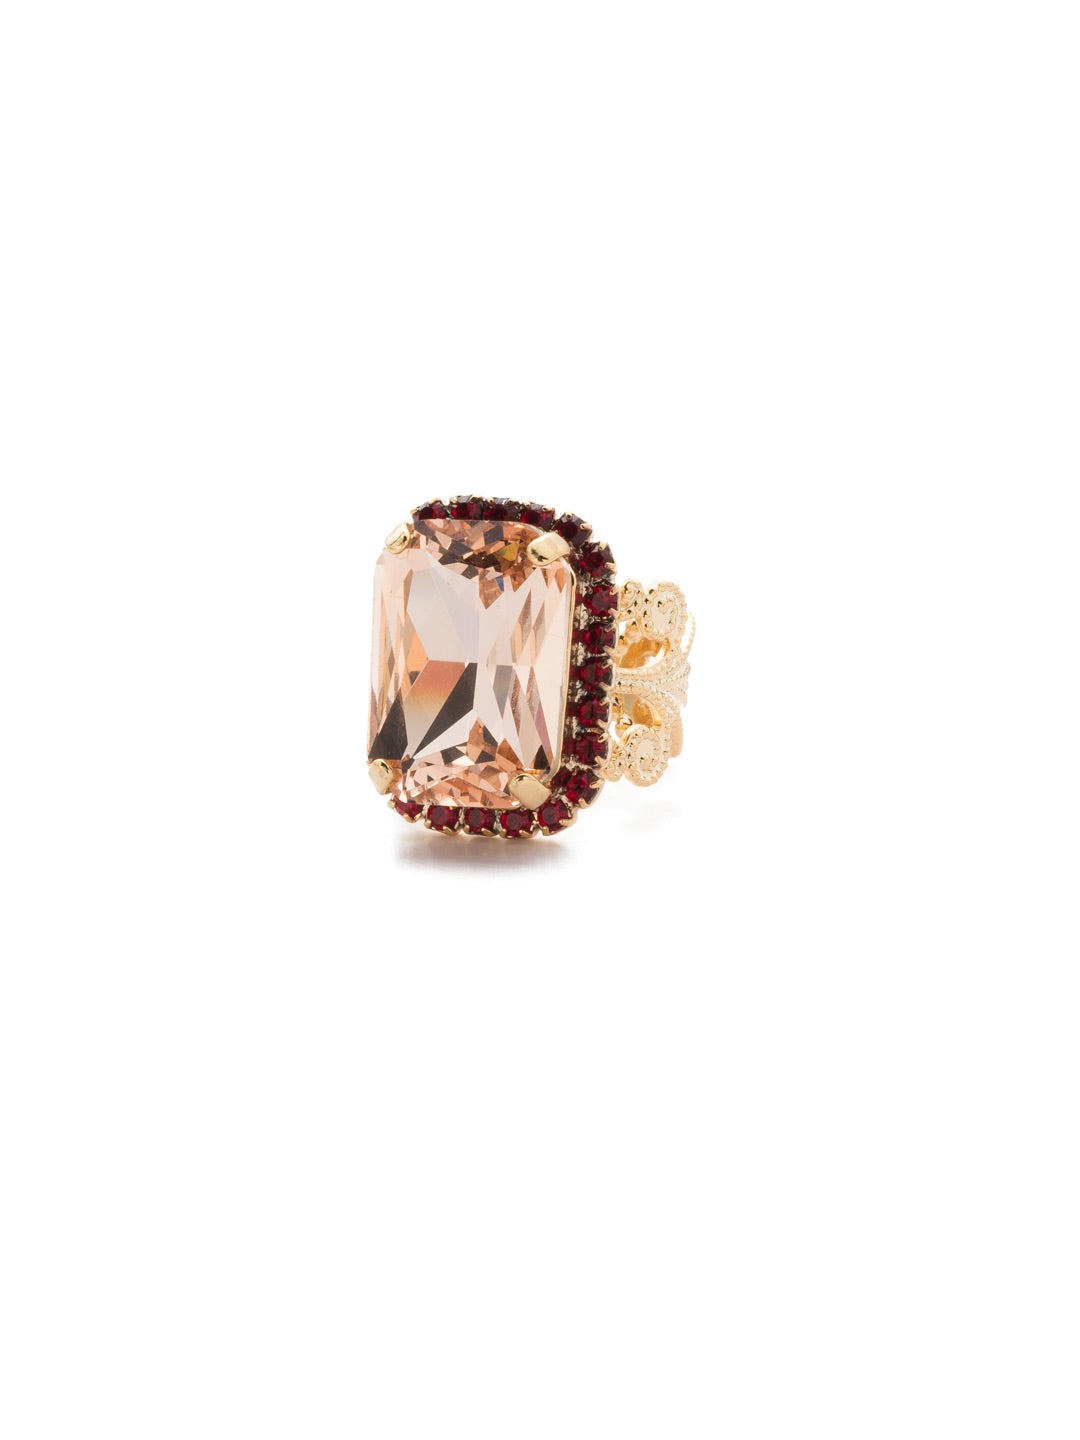 Petite Emerald-Cut Cocktail Ring - RCF9BGSRC